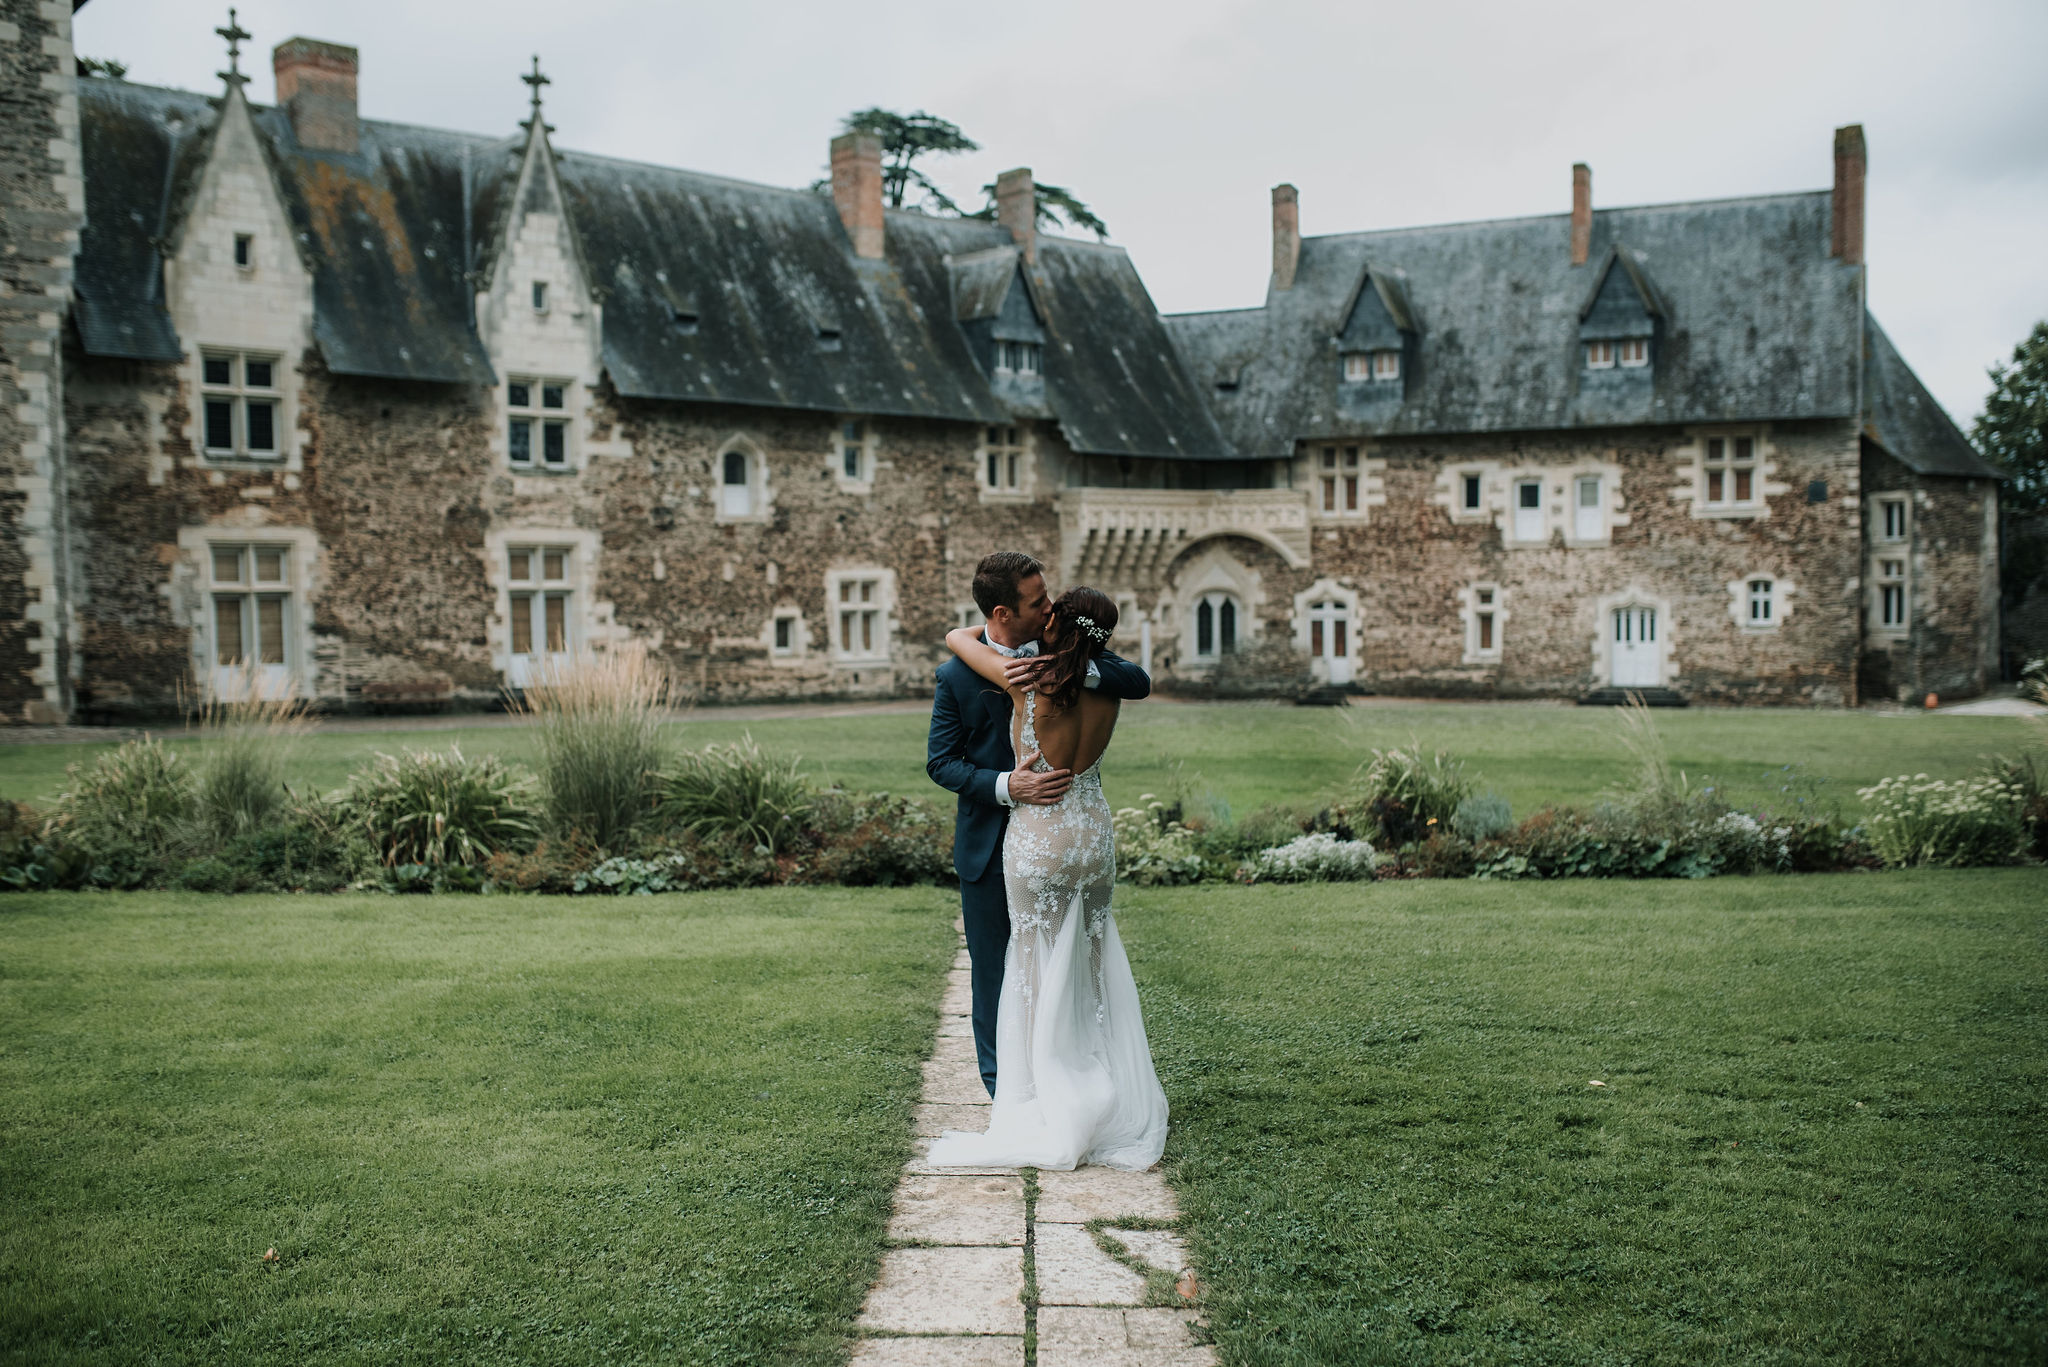 Mariage domaine du Plessis Angers